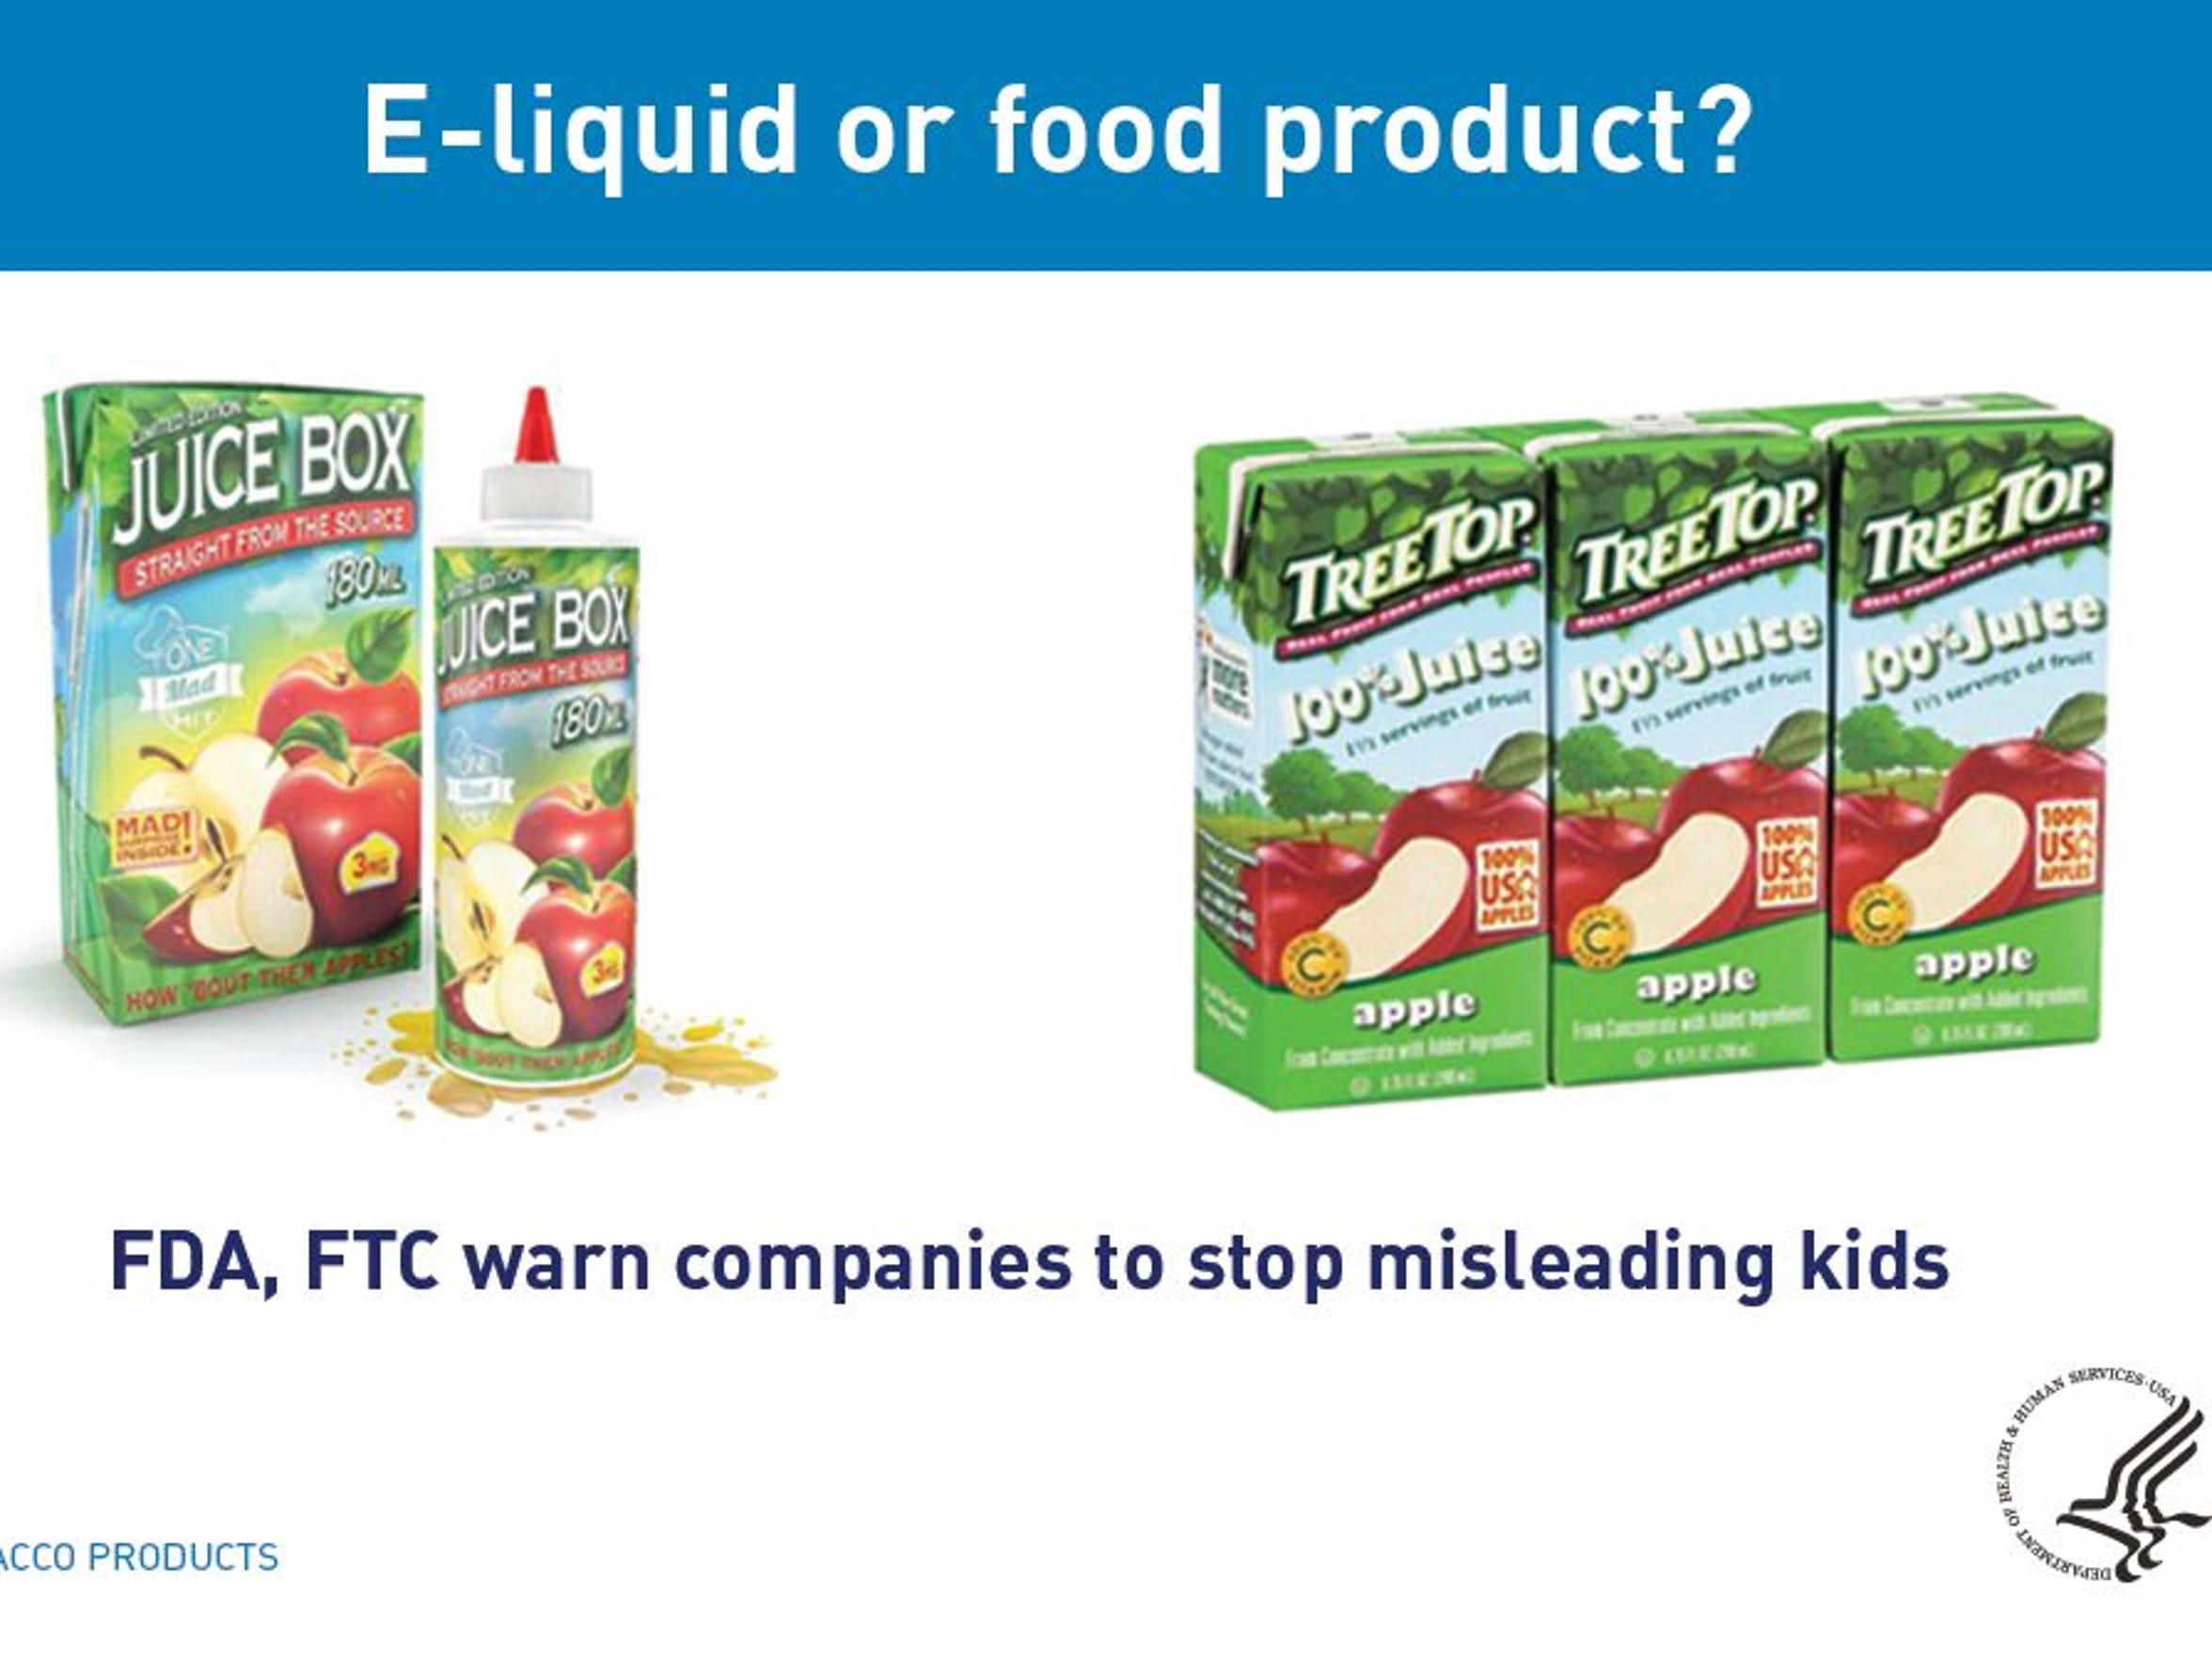 The FDA and FTC issued warning letters to 13 vaping companies May 1, 2018, to stop misleading kids with deceptive packaging that makes nicotine liquid look like candy or juice.